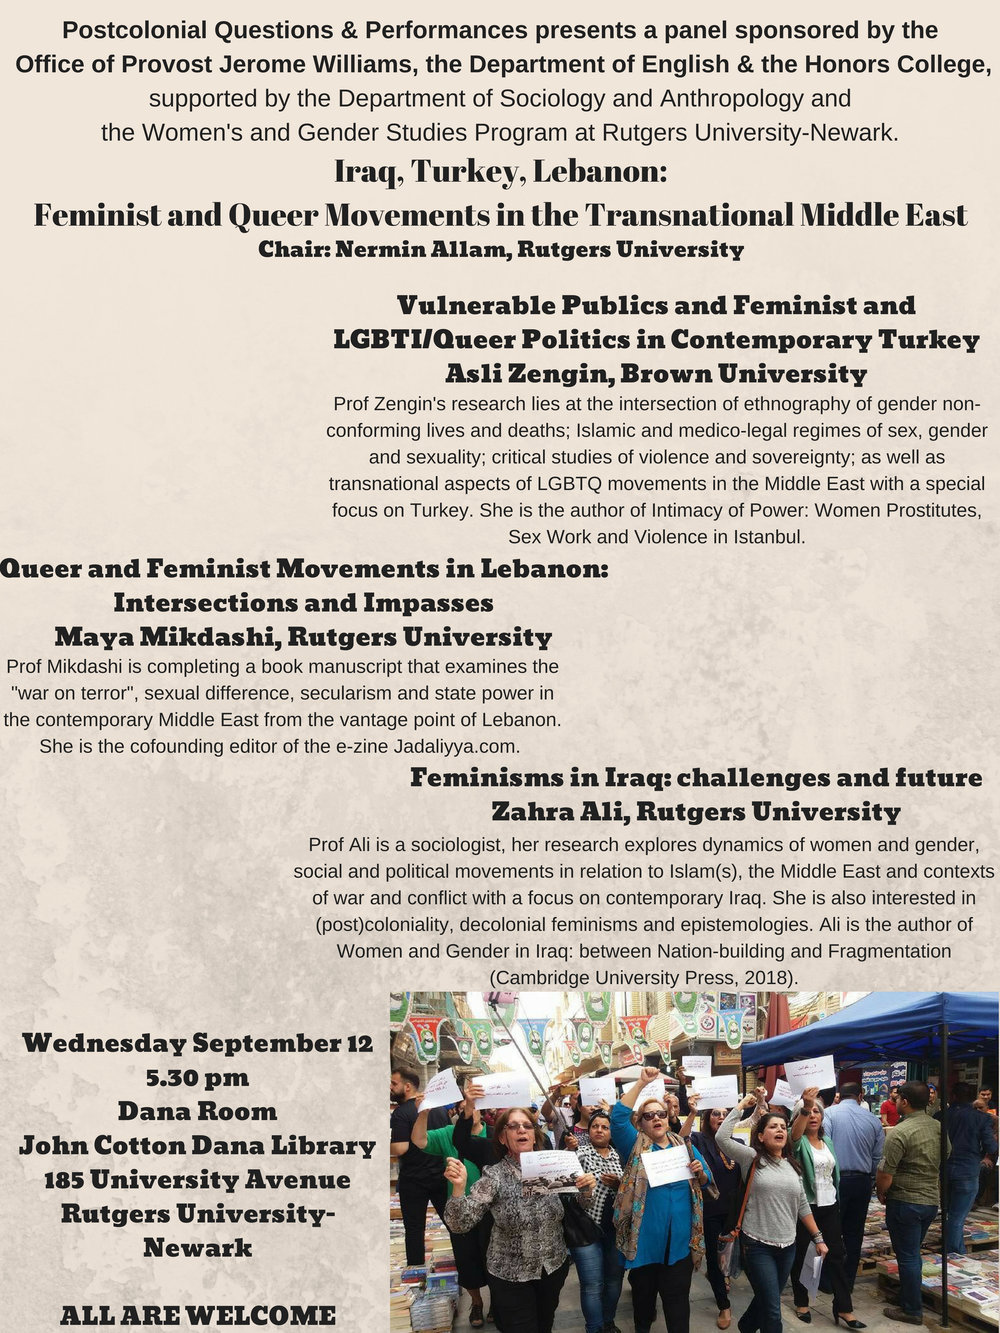 Iraq, Turkey, Lebanon_Feminist and Queer Movements in the Transnational Middle East-4.jpg